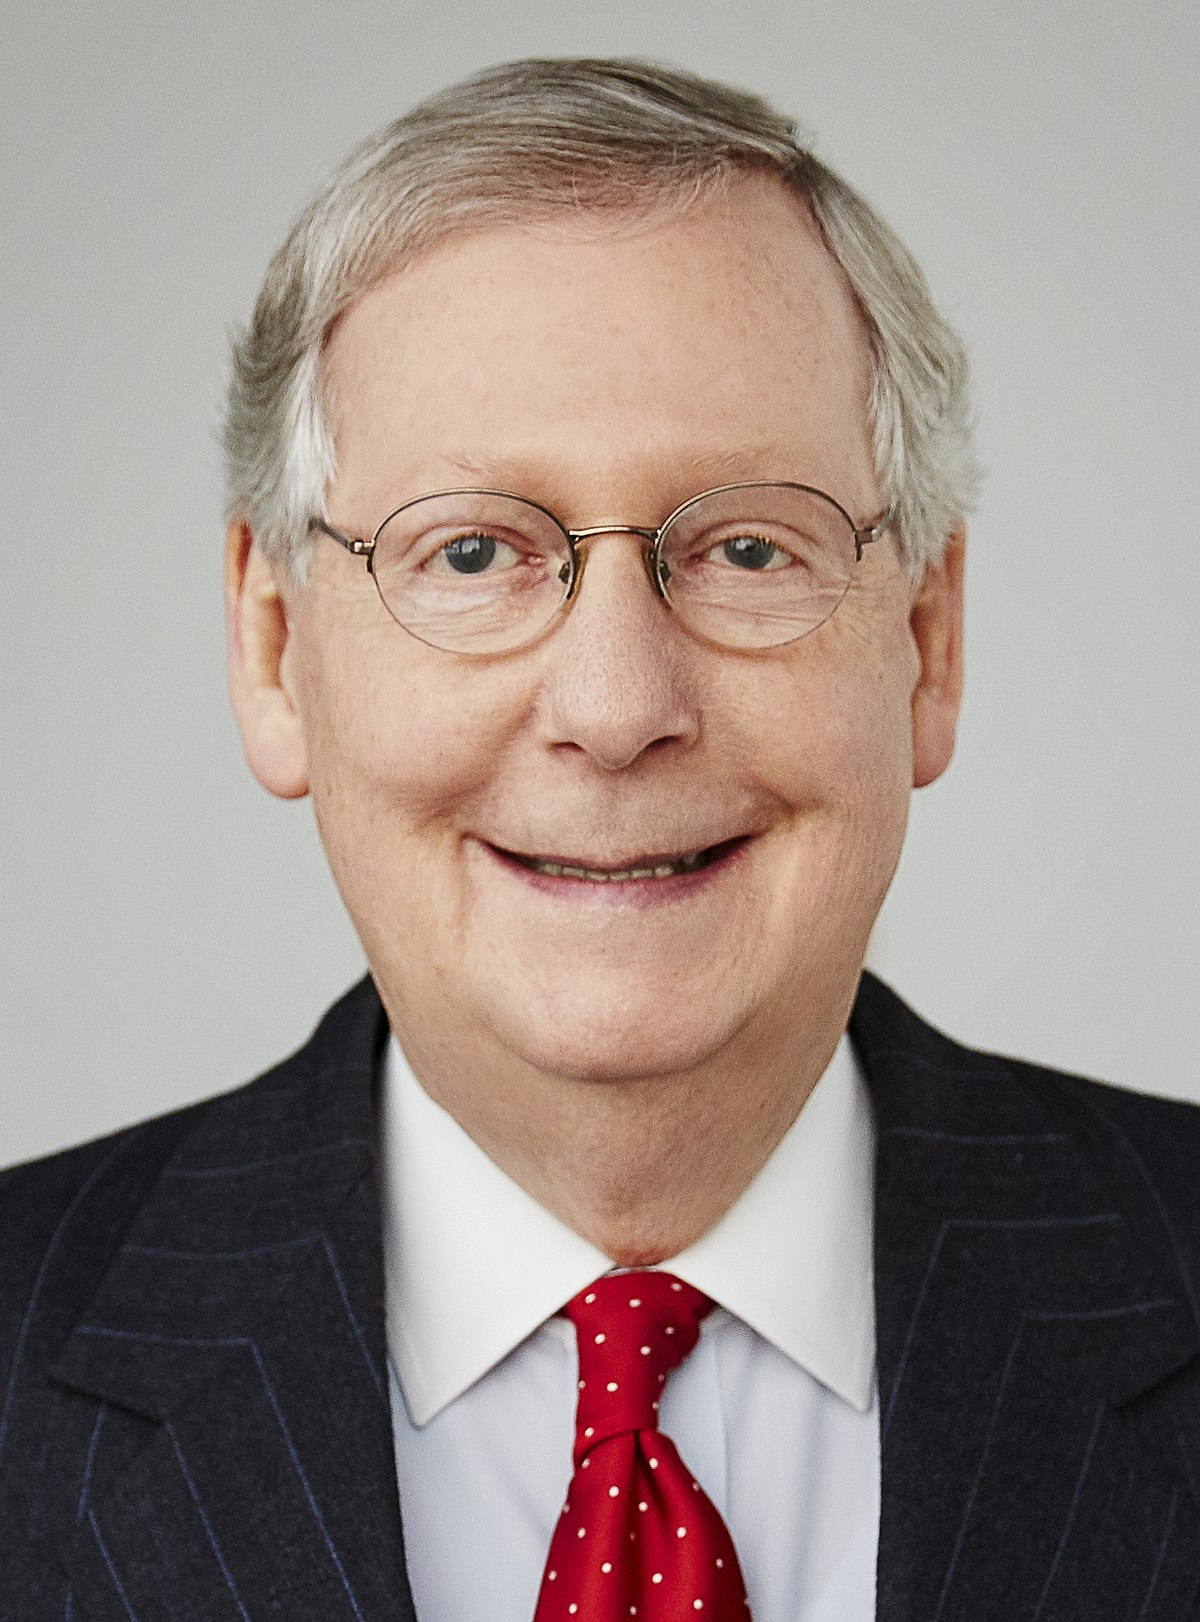 Mitch Mcconnell Wikipedia